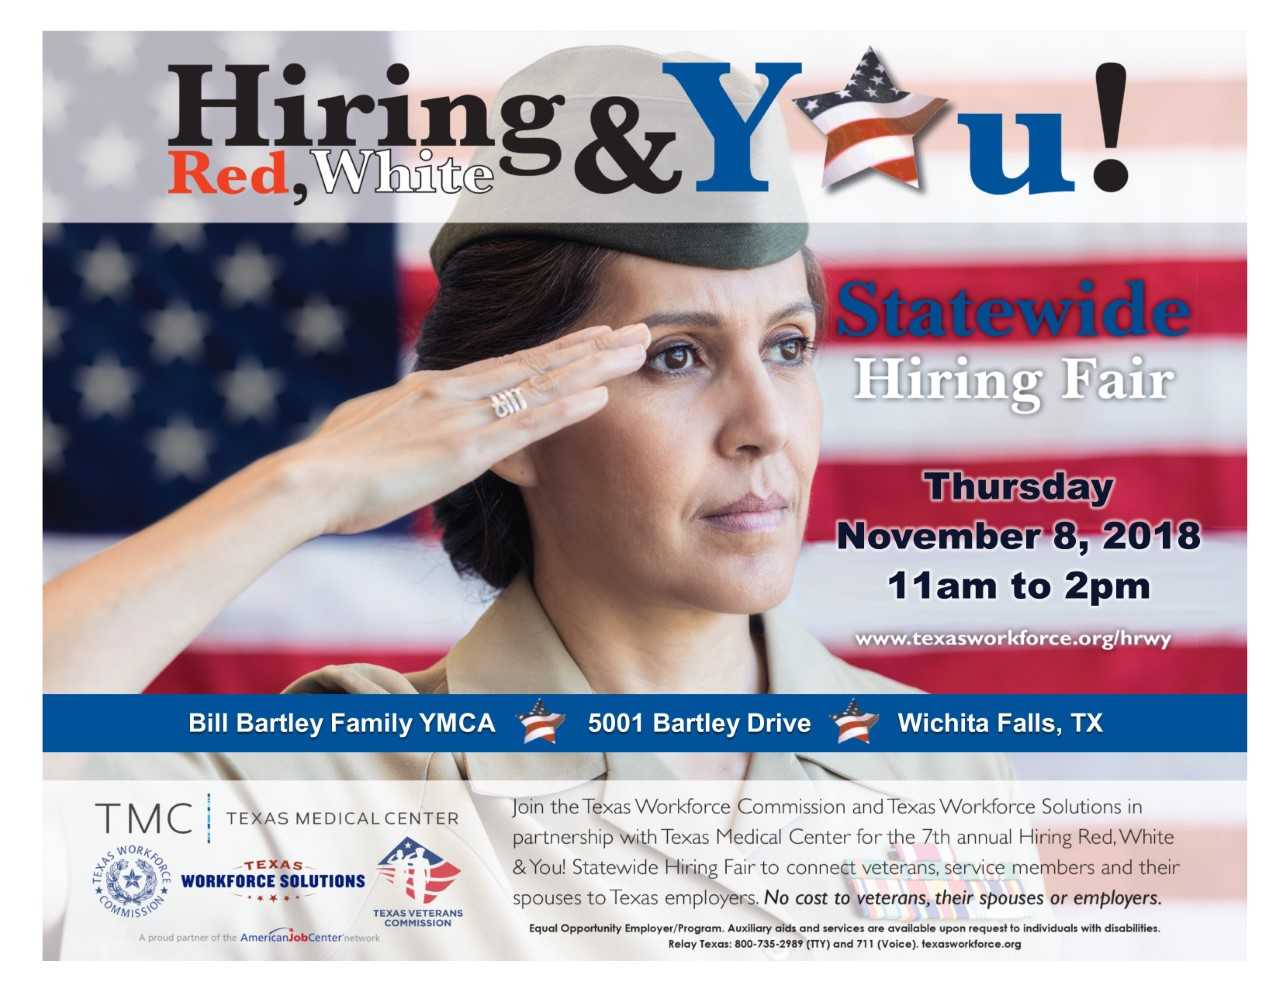 Hiring Red, White and You_1539896355629.jpg.jpg